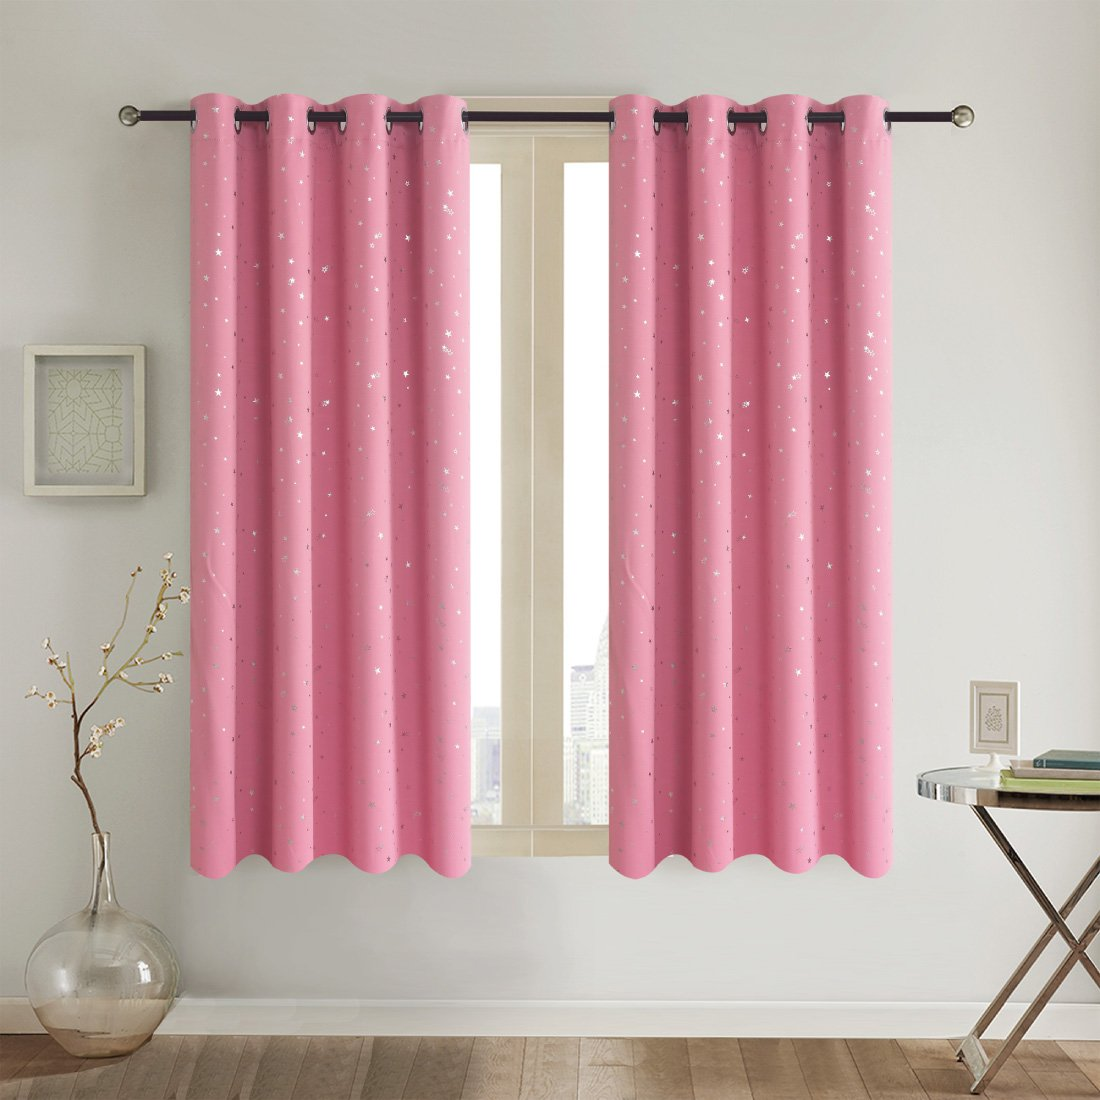 Alice Brown Romantic Starry Sky Creative Blackout Window Curtains for Kids Room/girls room/boys room Space Inspired Night Sky Twinkle Star Kid's Room Draperies by W52 x L63-Inch 2 Panels Pink